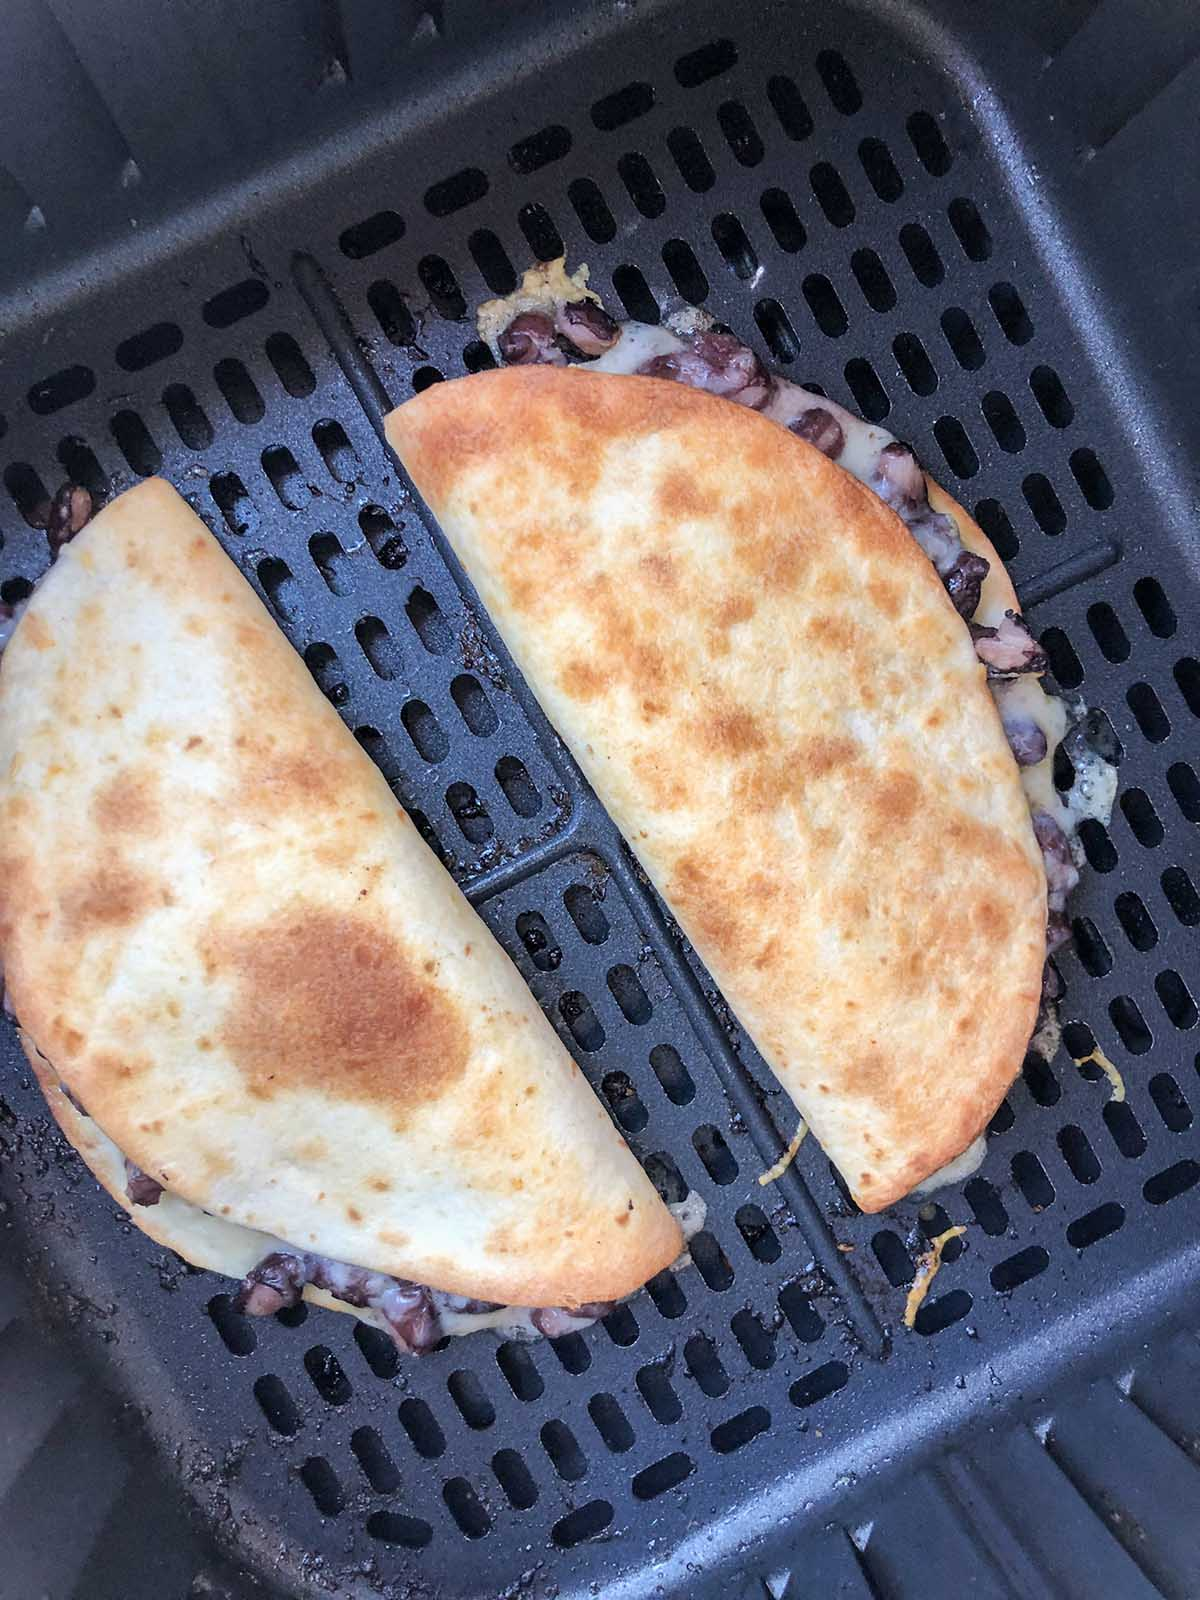 cooked quesadilla in air fryer basket